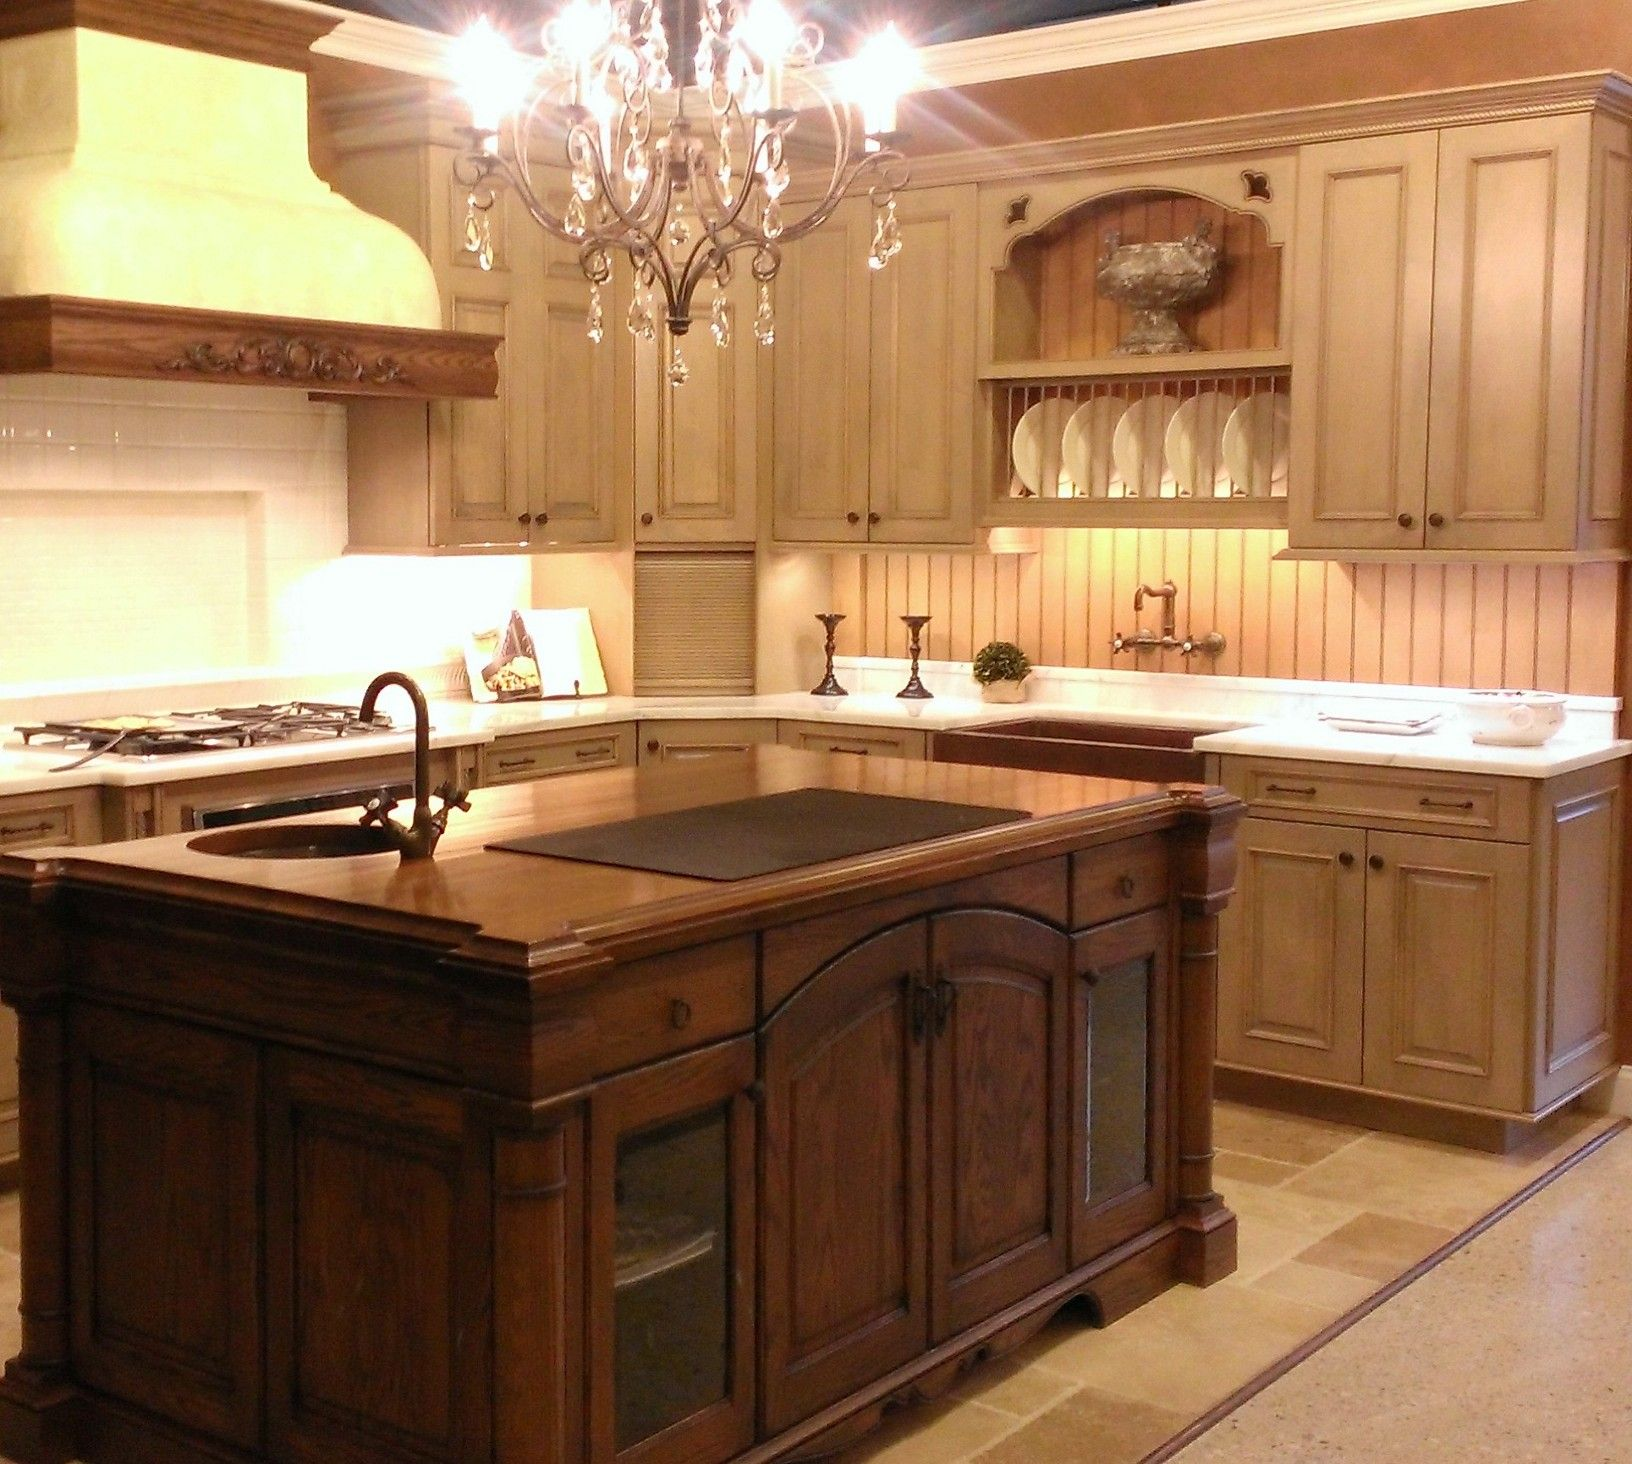 Rustic, Two Tone Kitchen Design | Kenwood Kitchens in ...